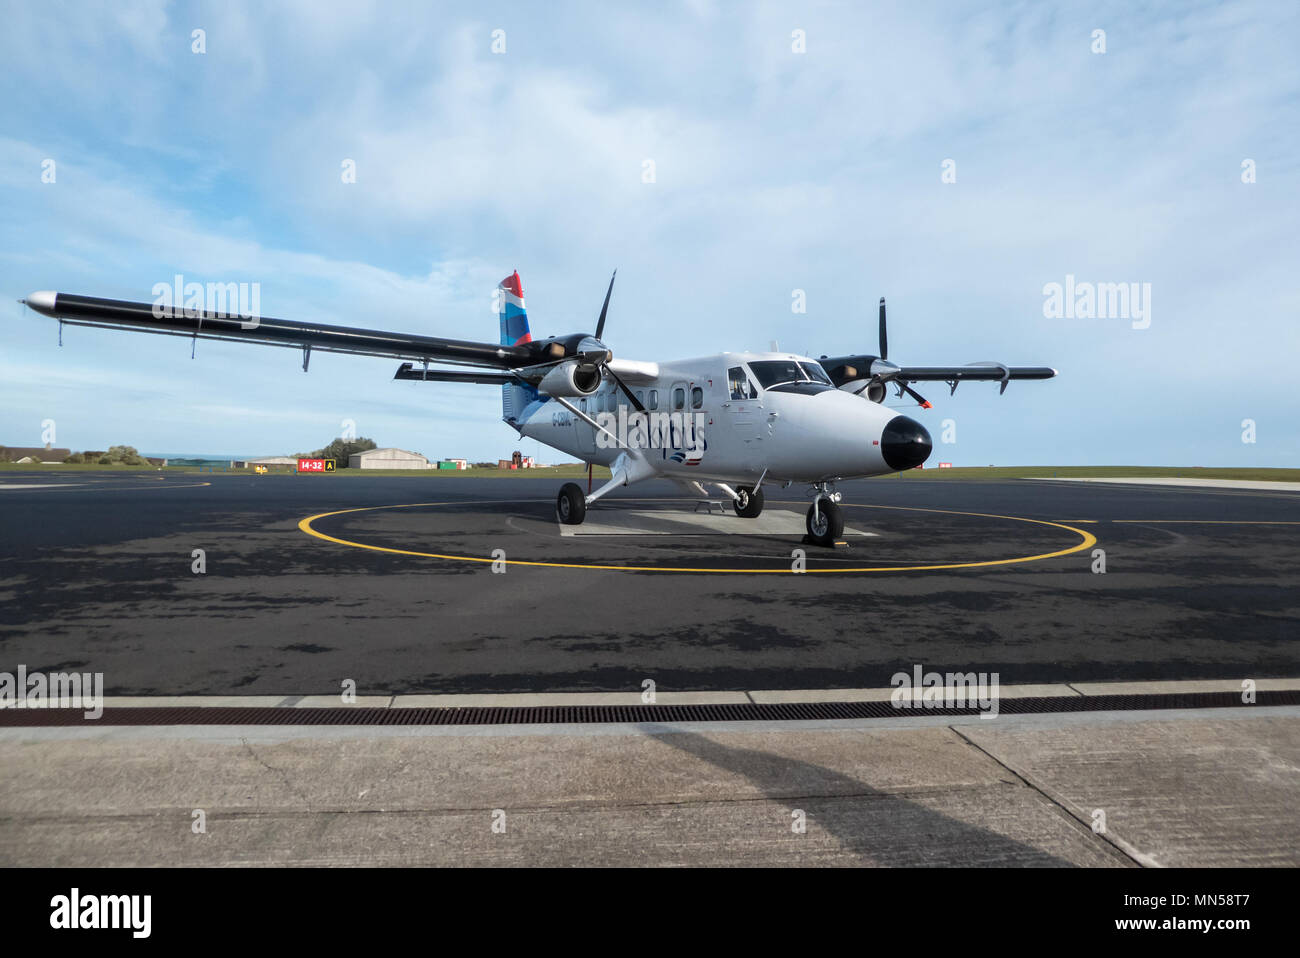 Skybus DHC-6 Twin Otter, on the tarmac at St. Mary's Airport, Isles of Scilly, UK - Stock Image